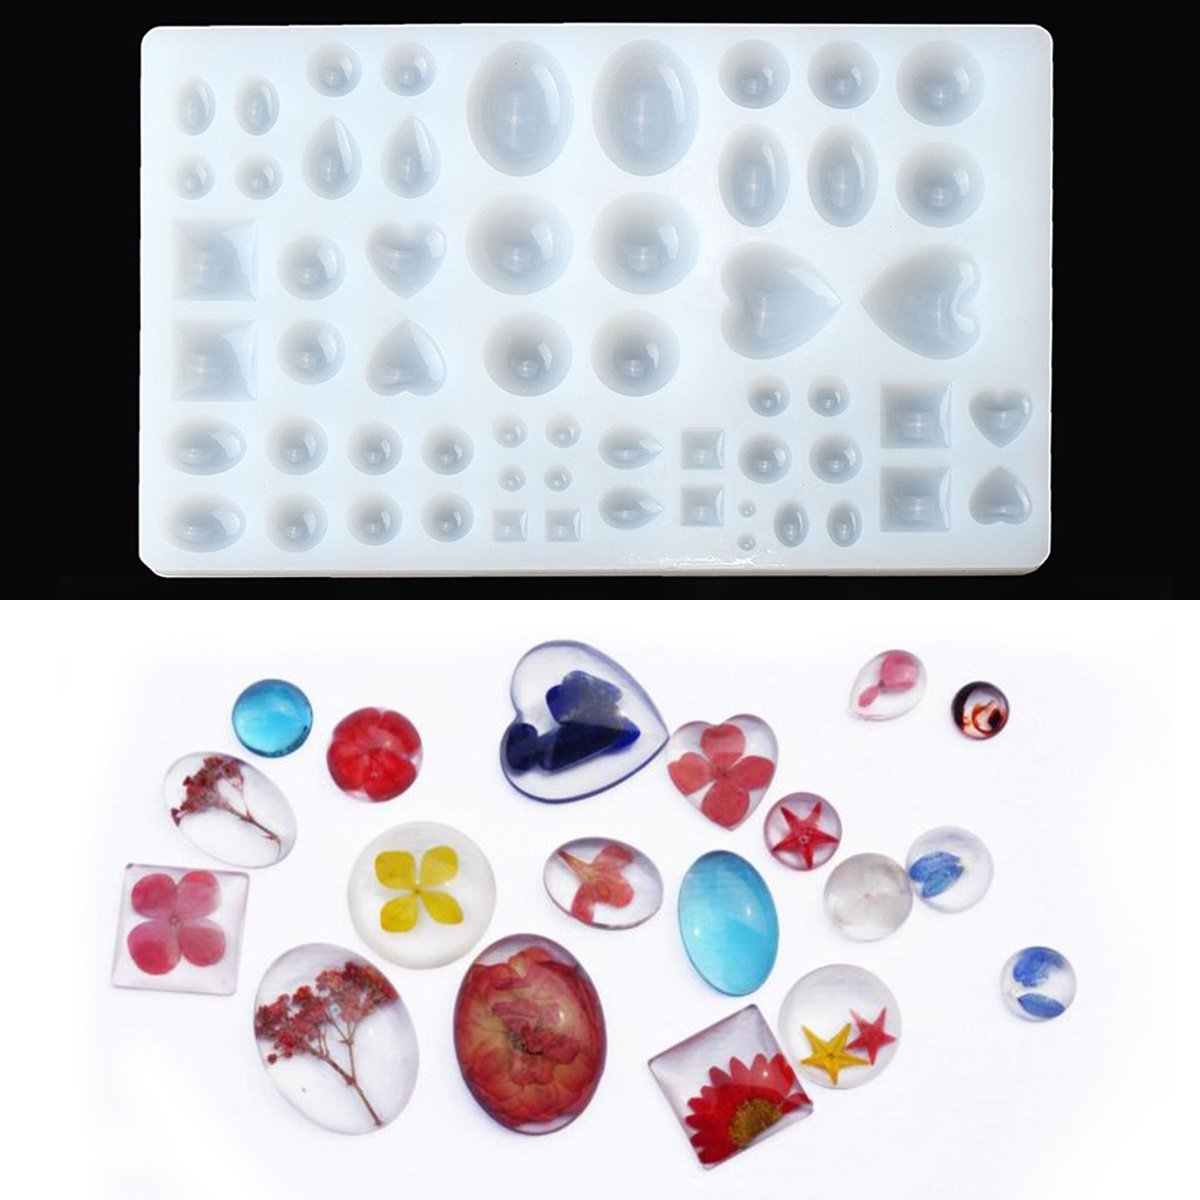 купить Silicone Epoxy Resin Mold for DIY Jewelry Making Casting Pendant Handmade Craft Jewelry Findings Accessories Components онлайн